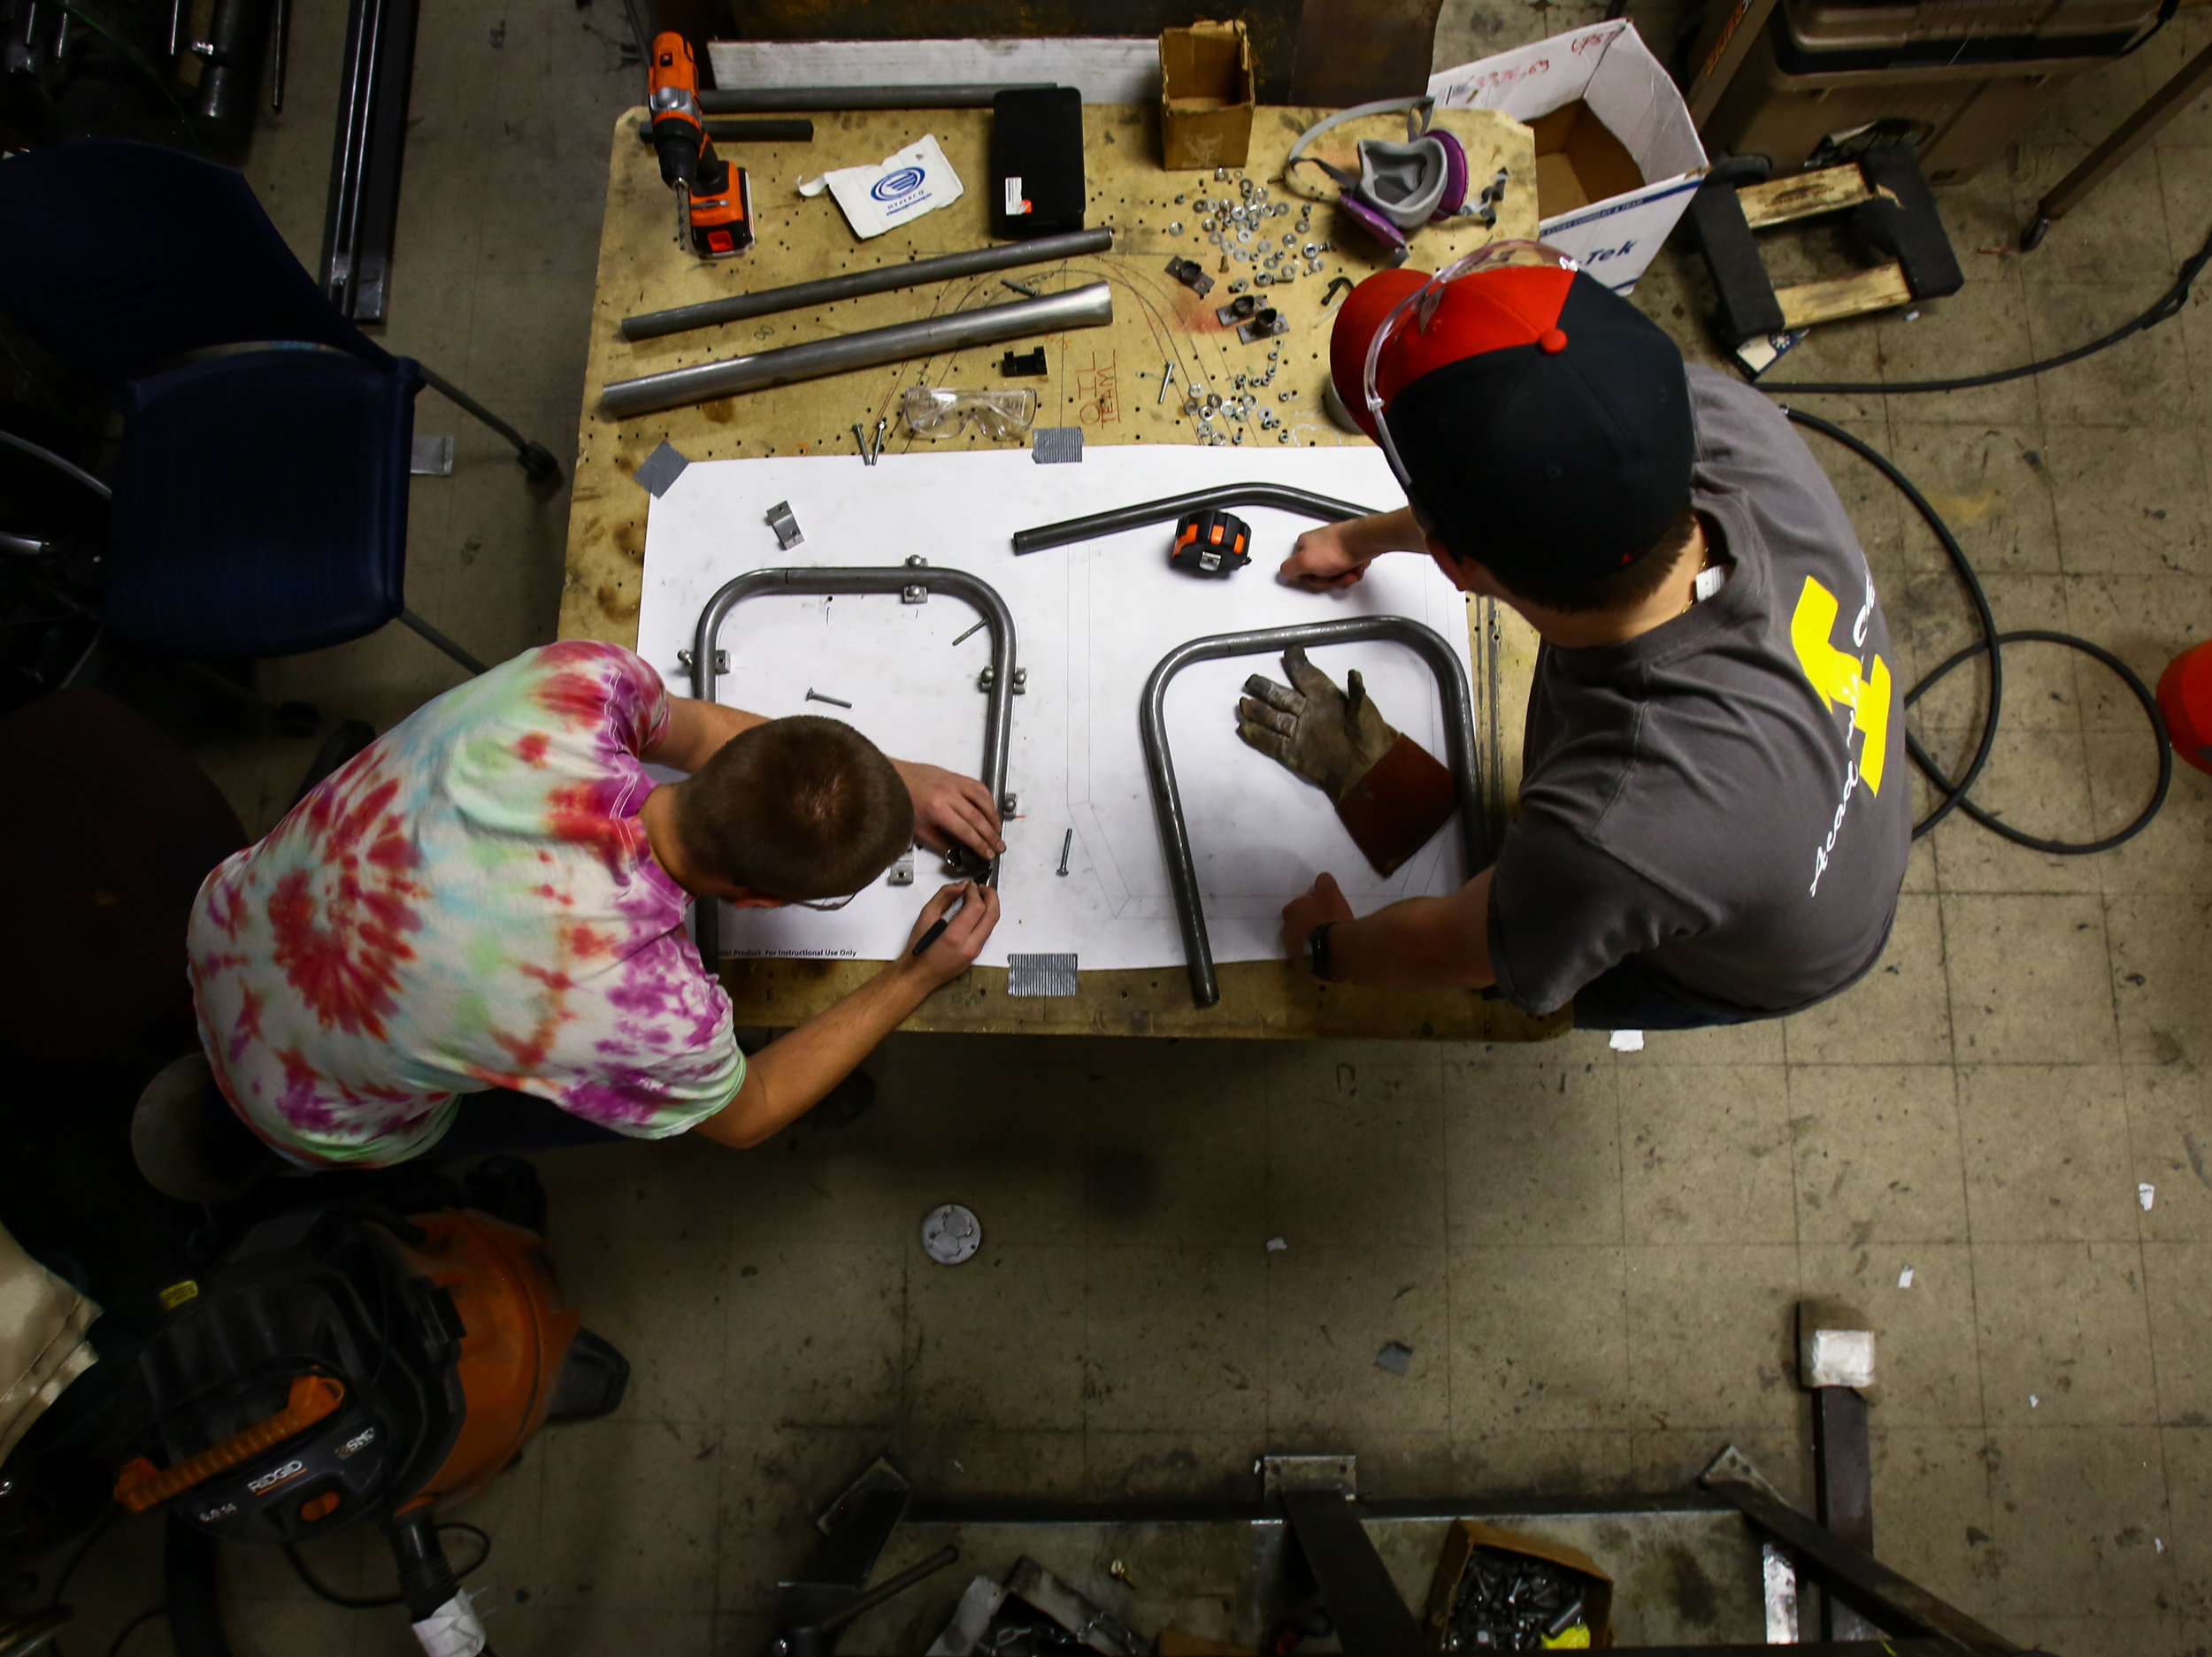 Jared Schaufele, left, and Colin Jedrzejek work on marking and cutting tubing to weld together the front bulk head as they begin to construct the chassis for the current season's car in the Formula SAE team lab in the University of Toledo's North Engineering Building.